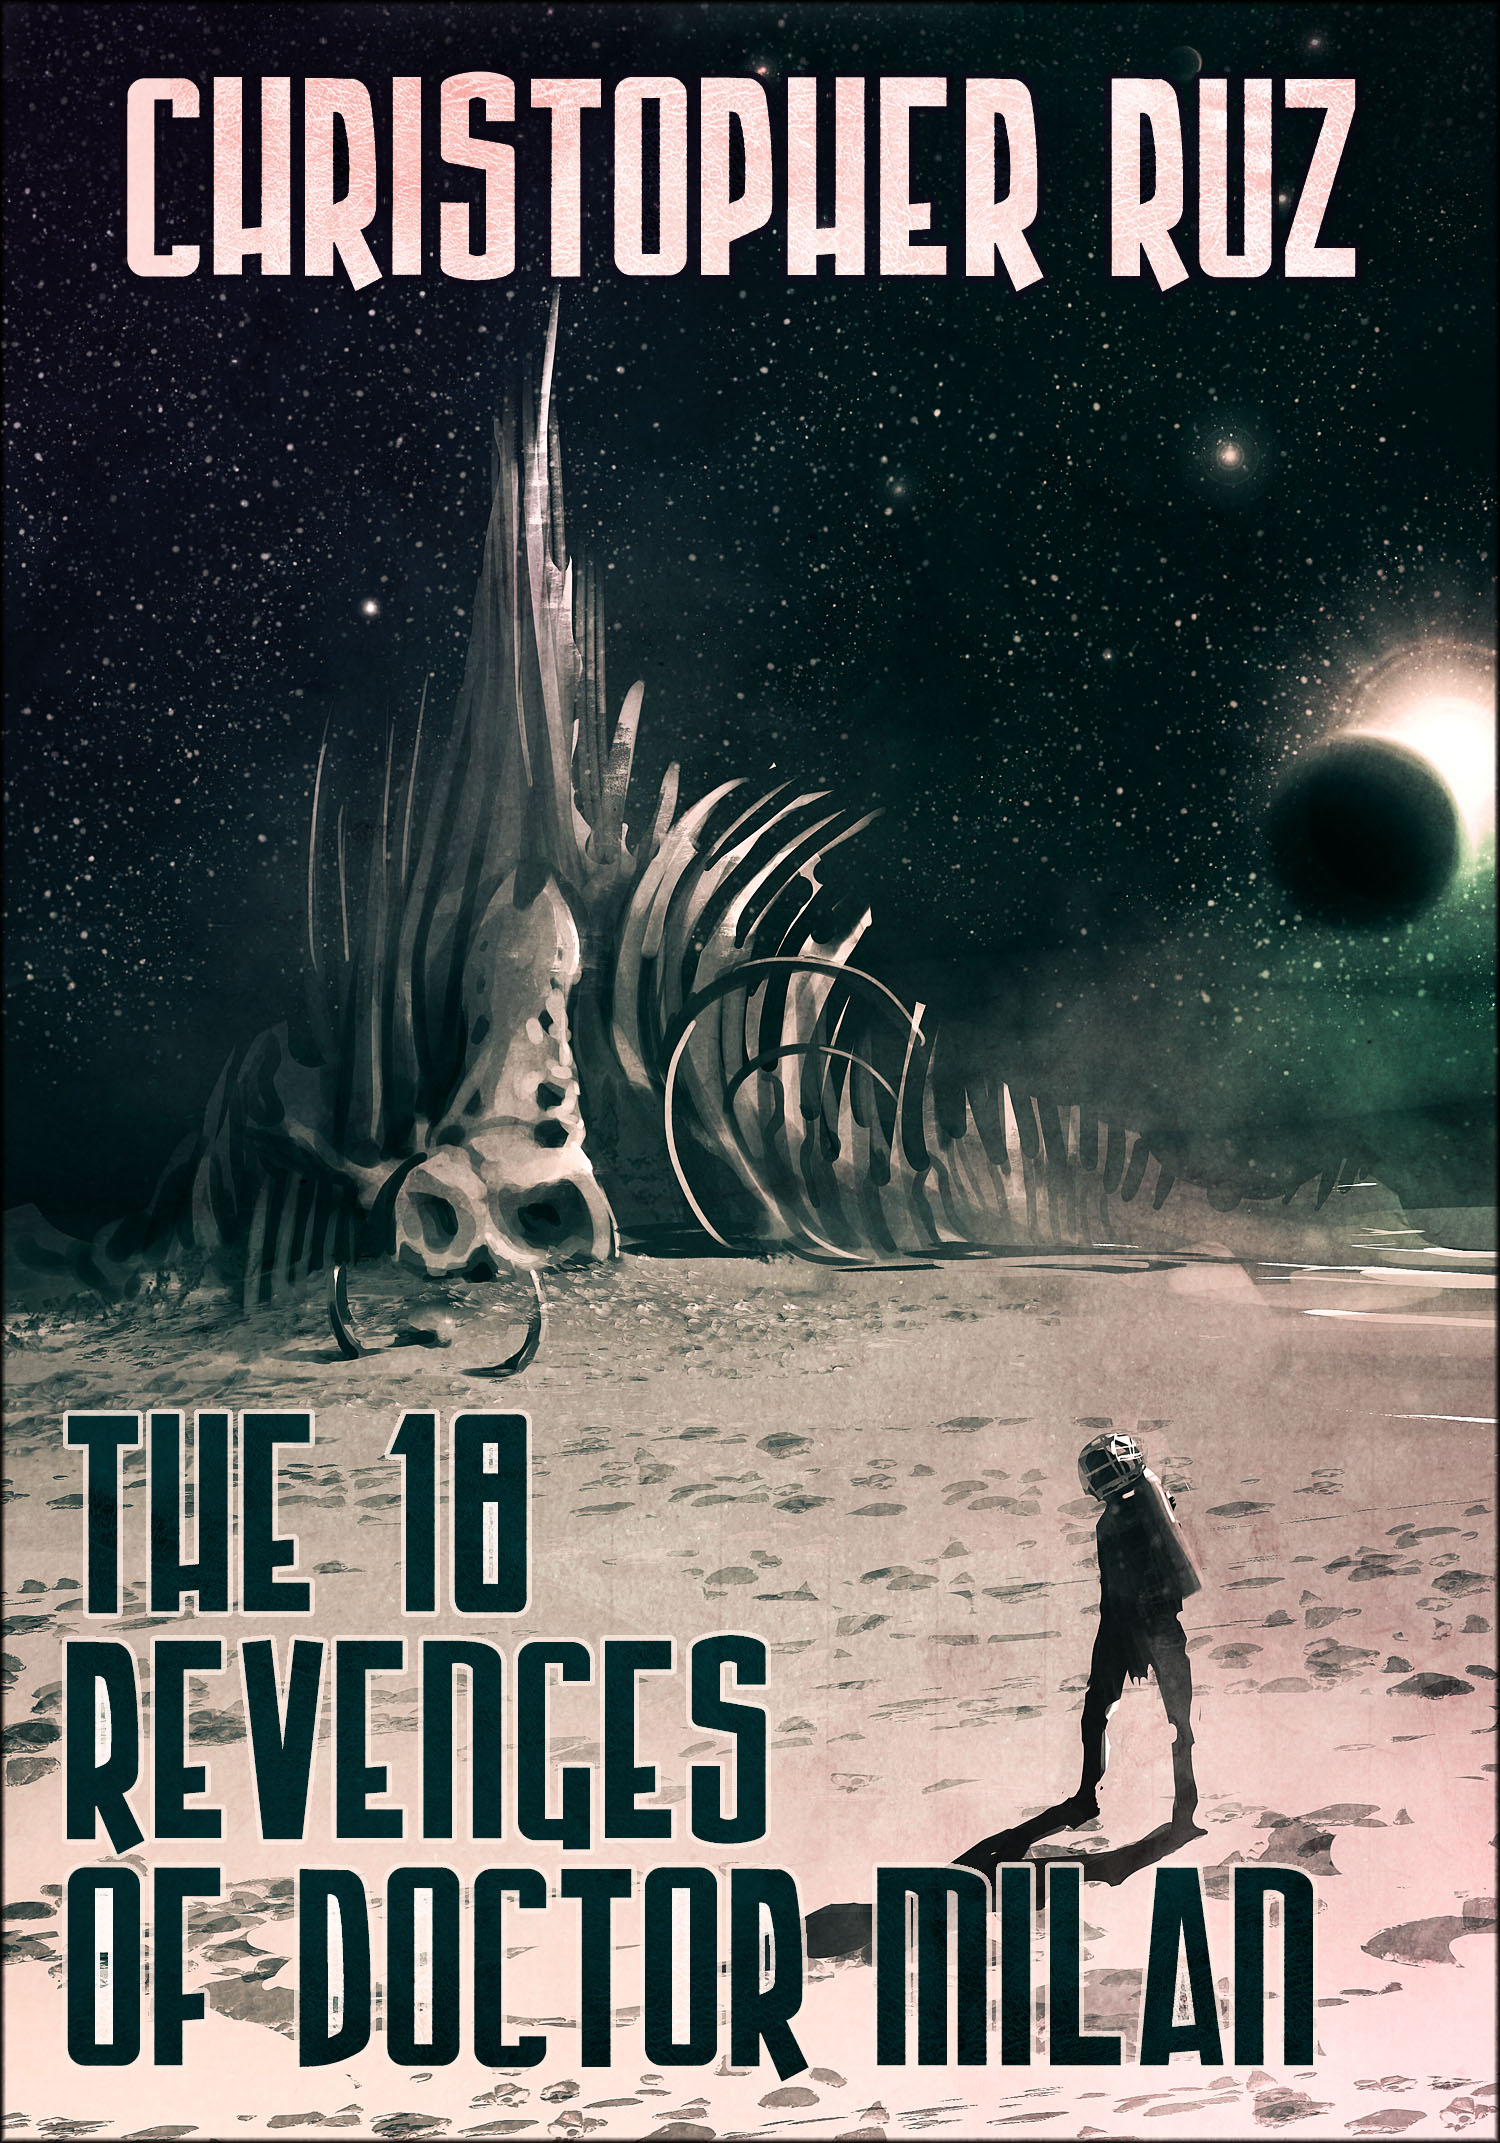 Cover art for The 18 Revenges of Doctor Milan